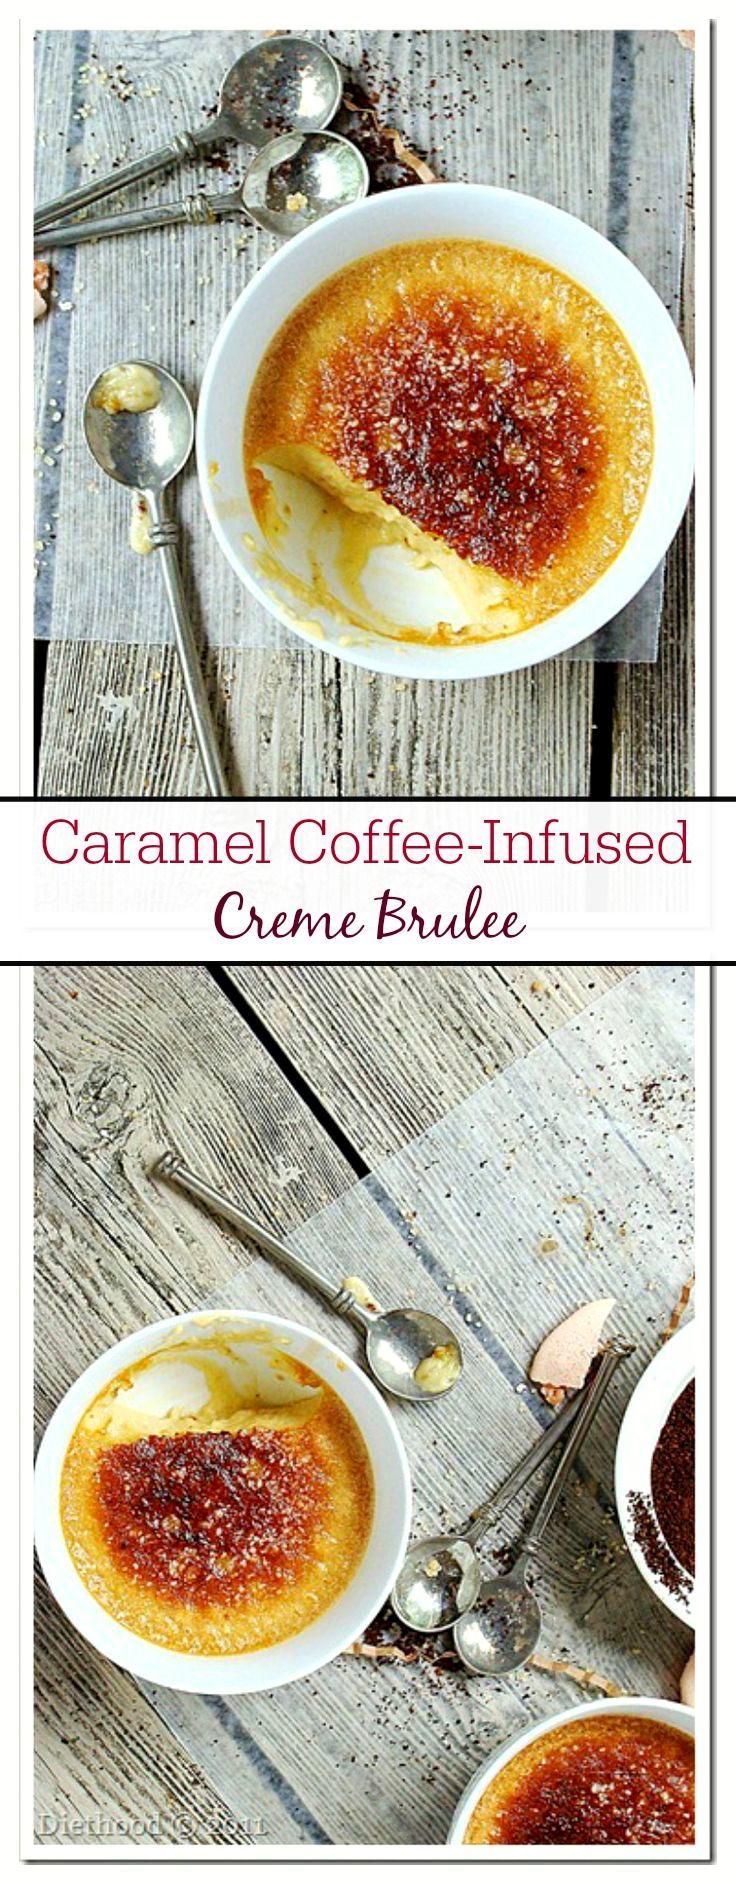 Caramel & Coffee-Infused Creme Brulee | Recipe | Custard ...